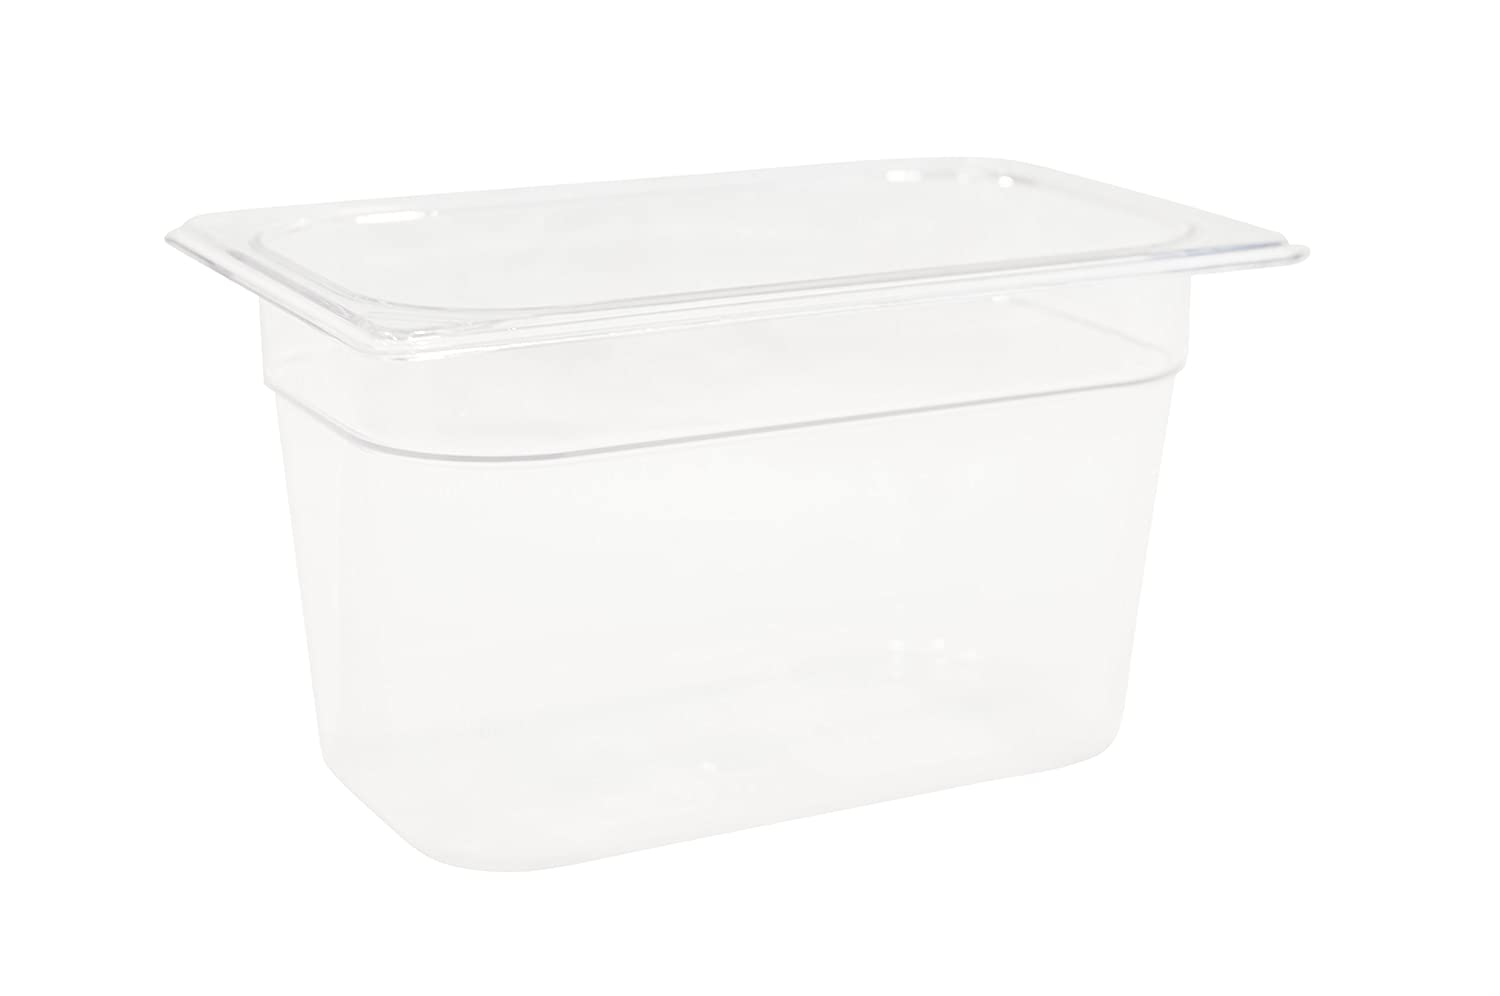 Rubbermaid Commercial Products Cold Food Insert Pan for Restaurants/Kitchens/Cafeterias, 1/4 Size, 6 Inches Deep, Clear (FG112P00CLR)